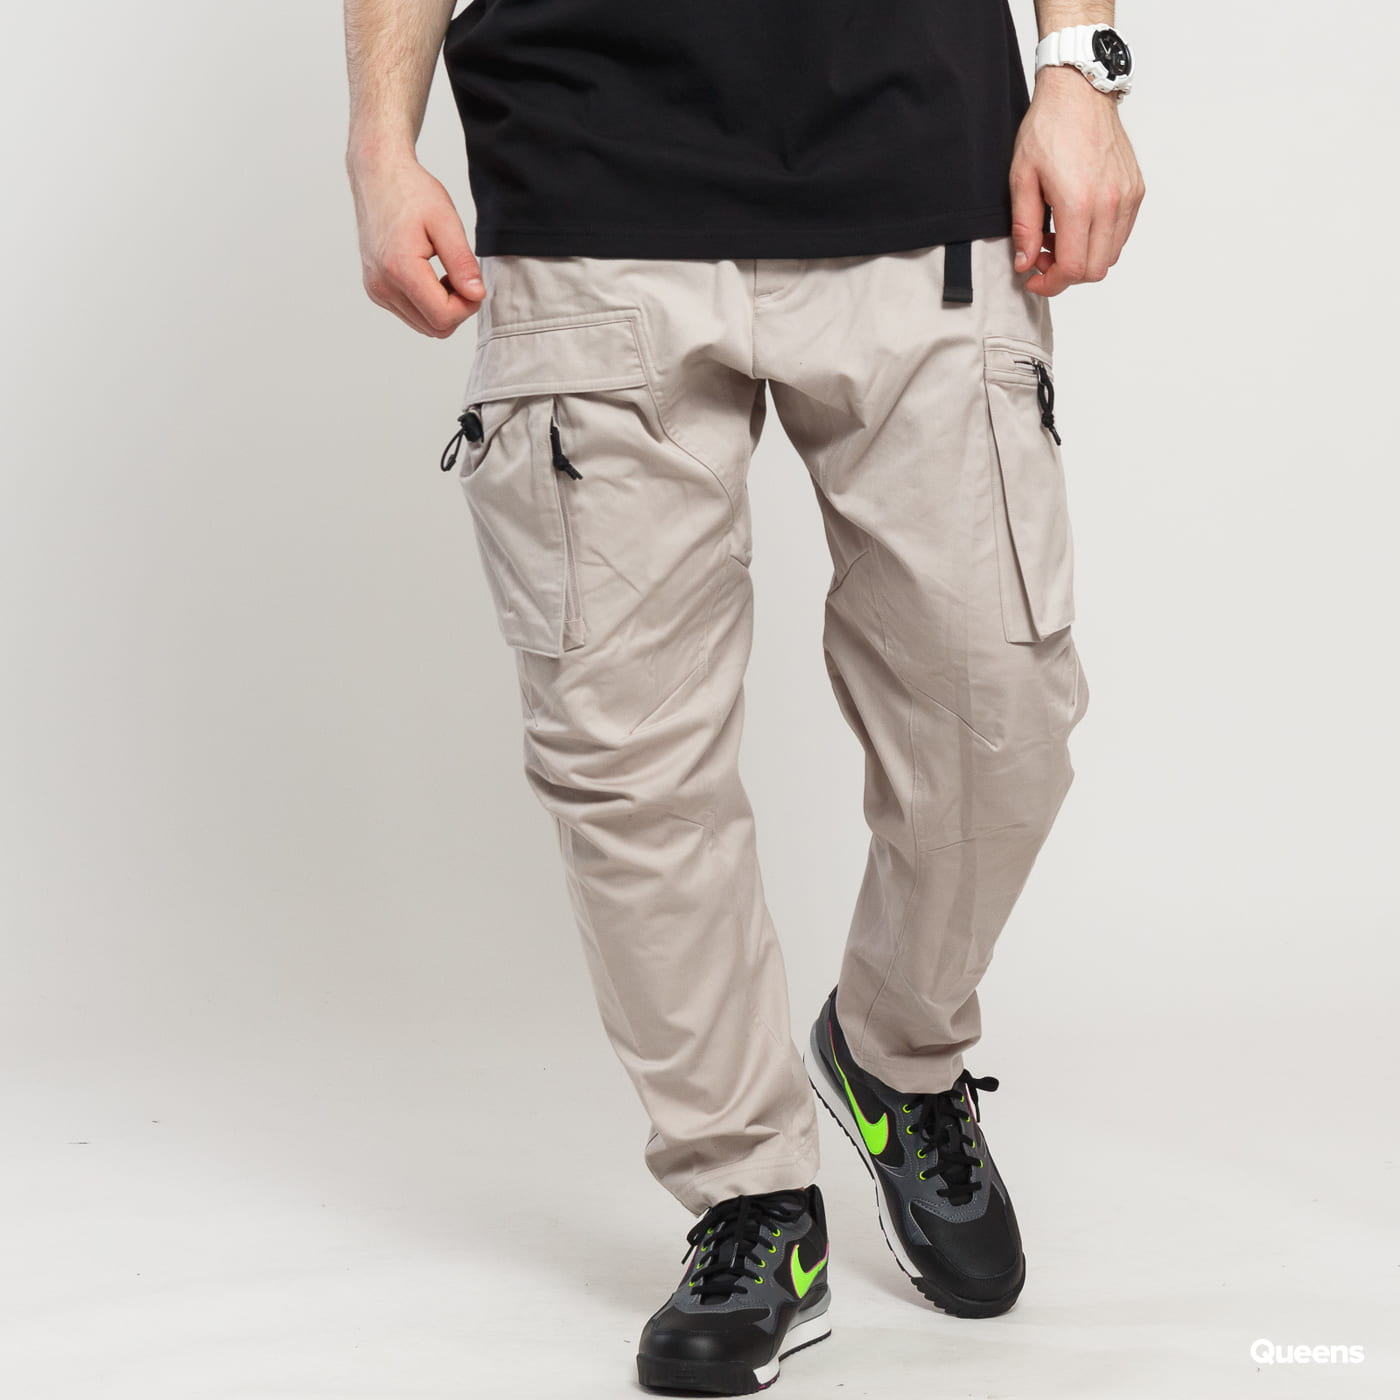 60% discount double coupon latest selection of 2019 Nike M Nike ACG Cargo Pant Woven beige